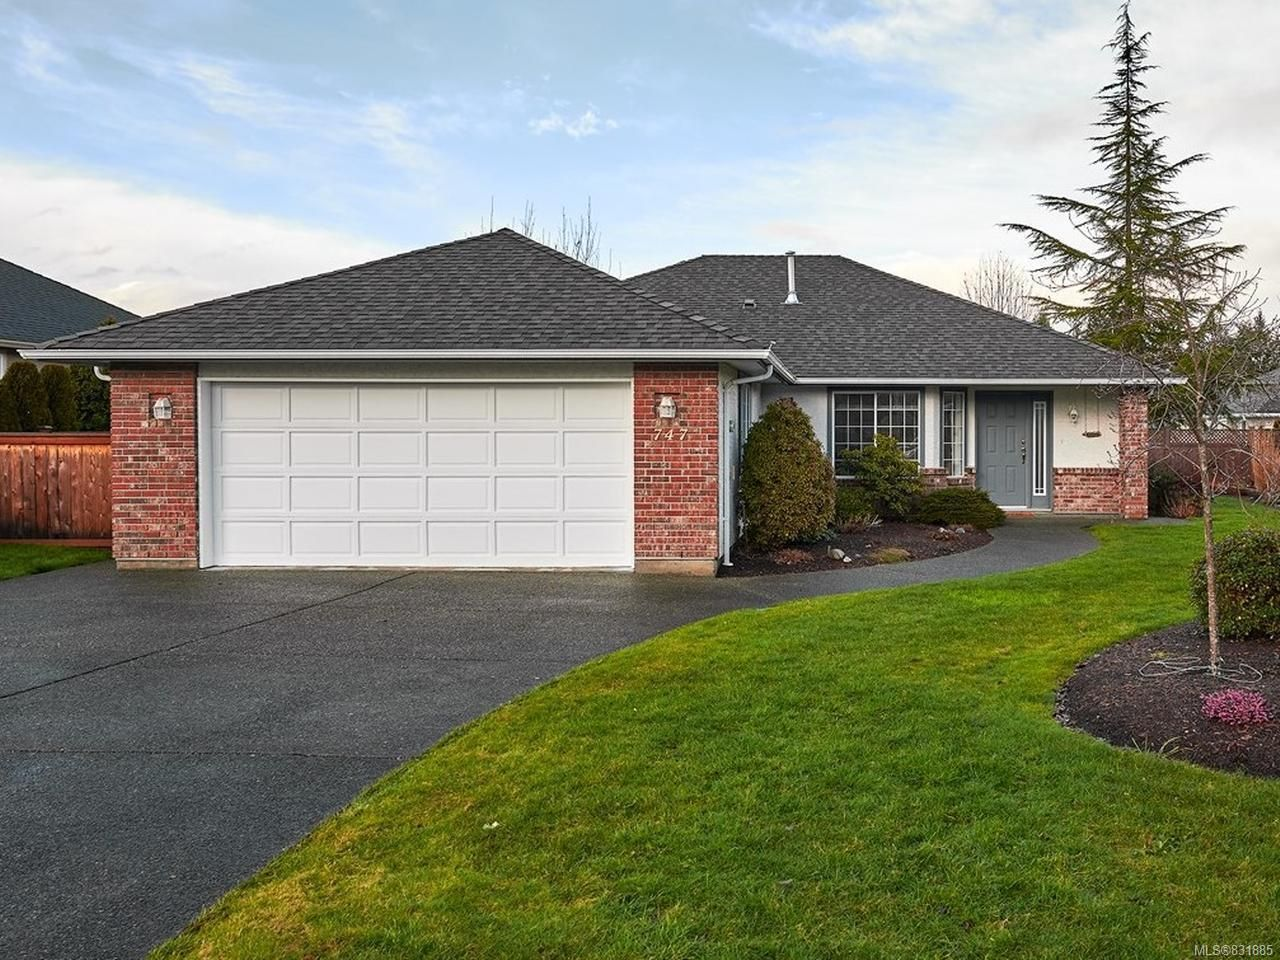 Main Photo: 747 DOVER Court in QUALICUM BEACH: PQ Qualicum Beach House for sale (Parksville/Qualicum)  : MLS®# 831885